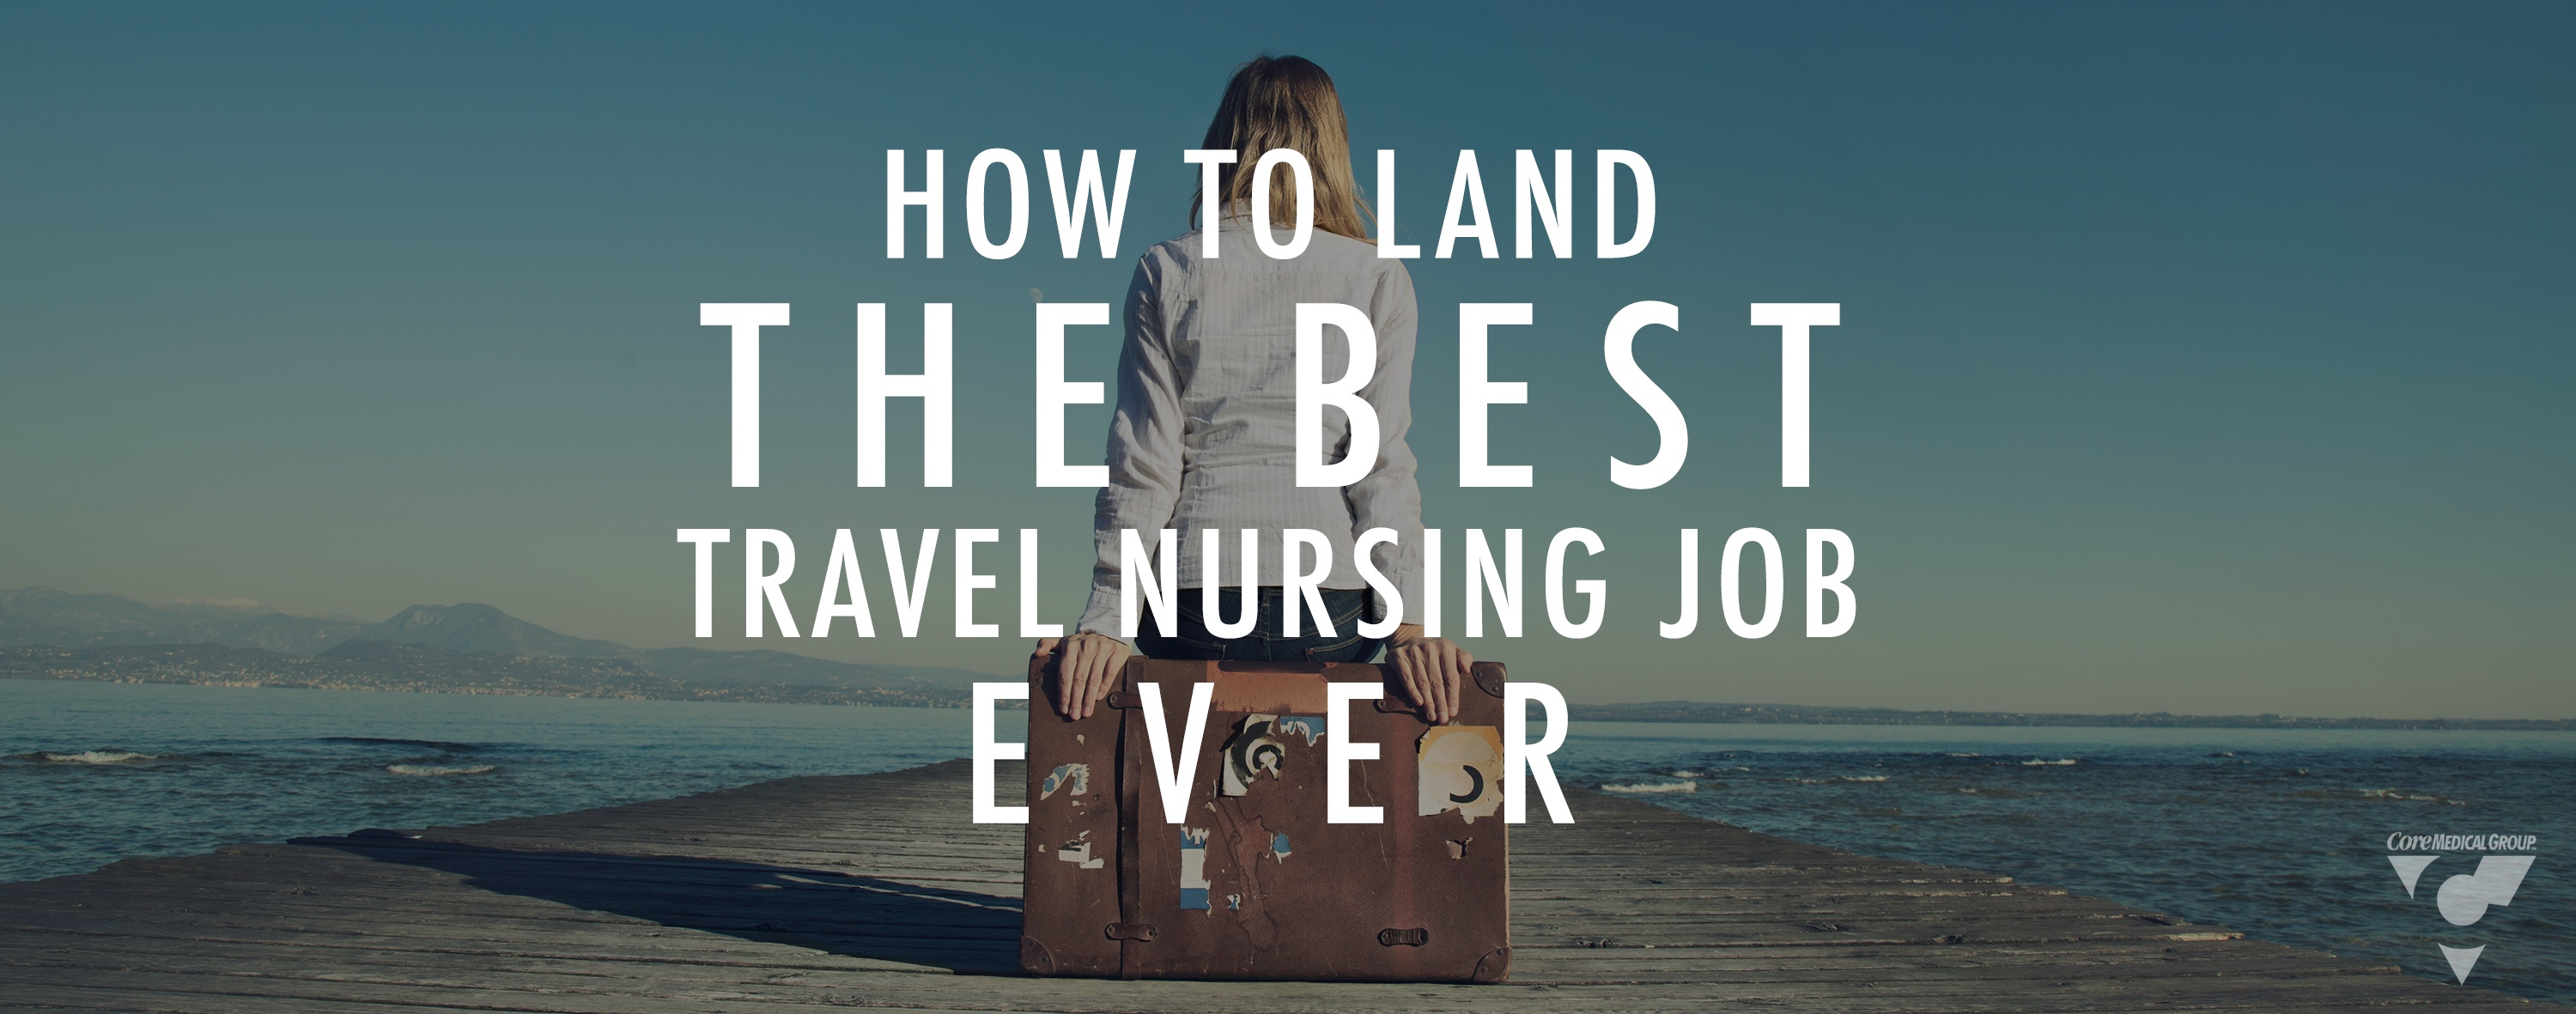 How to Land the Best Travel Nursing Job Ever